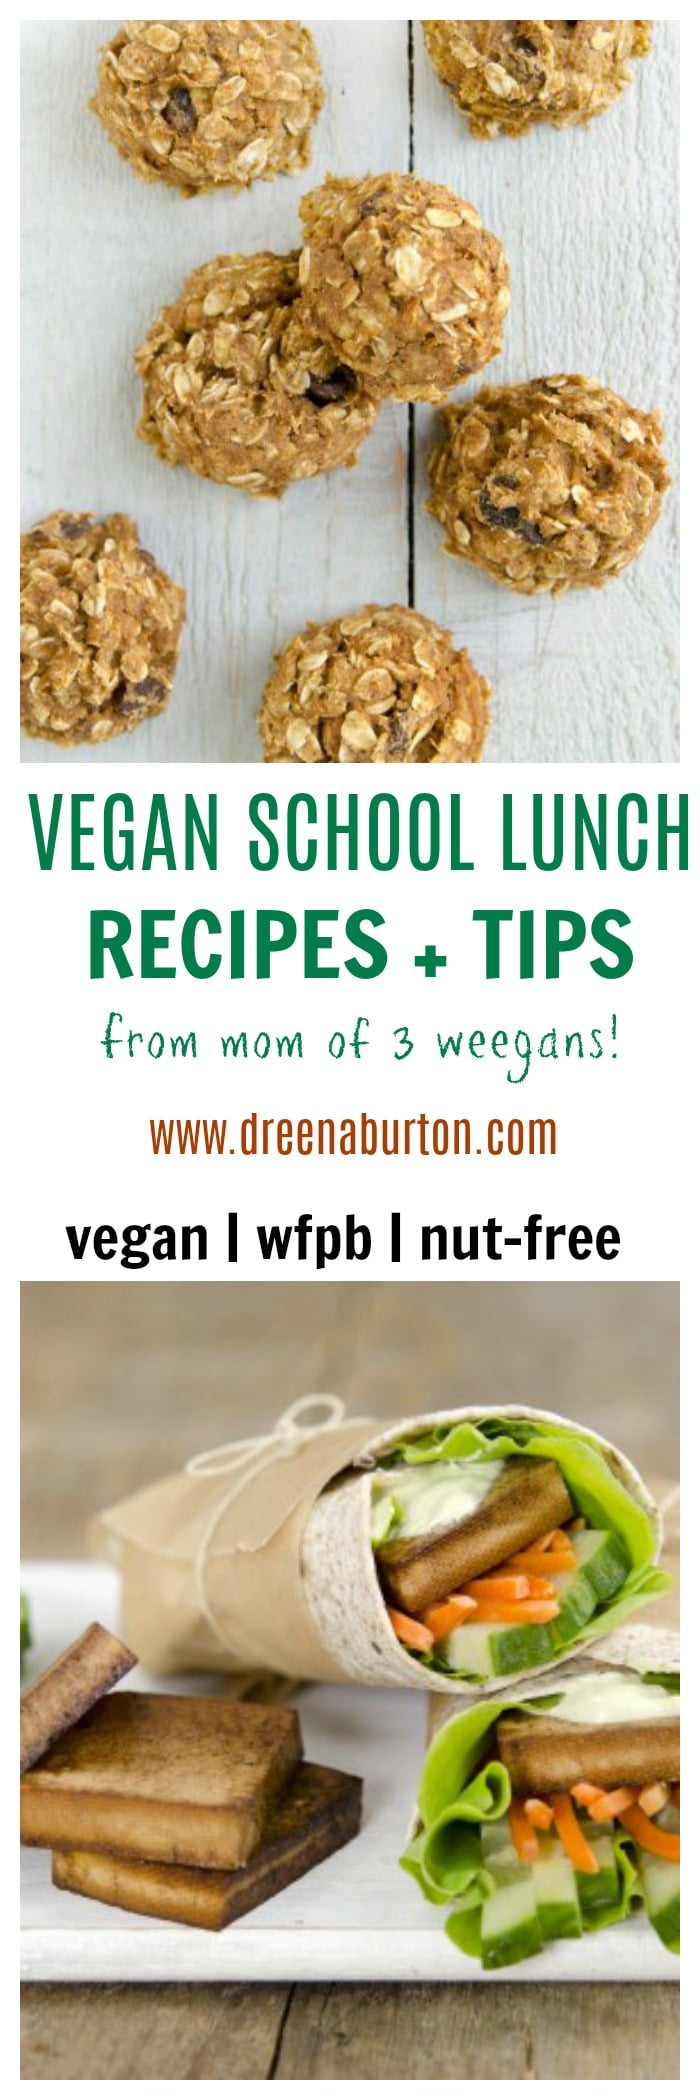 HEALTHY VEGAN School Lunches (Recipes + TIPS) for packing school lunches!